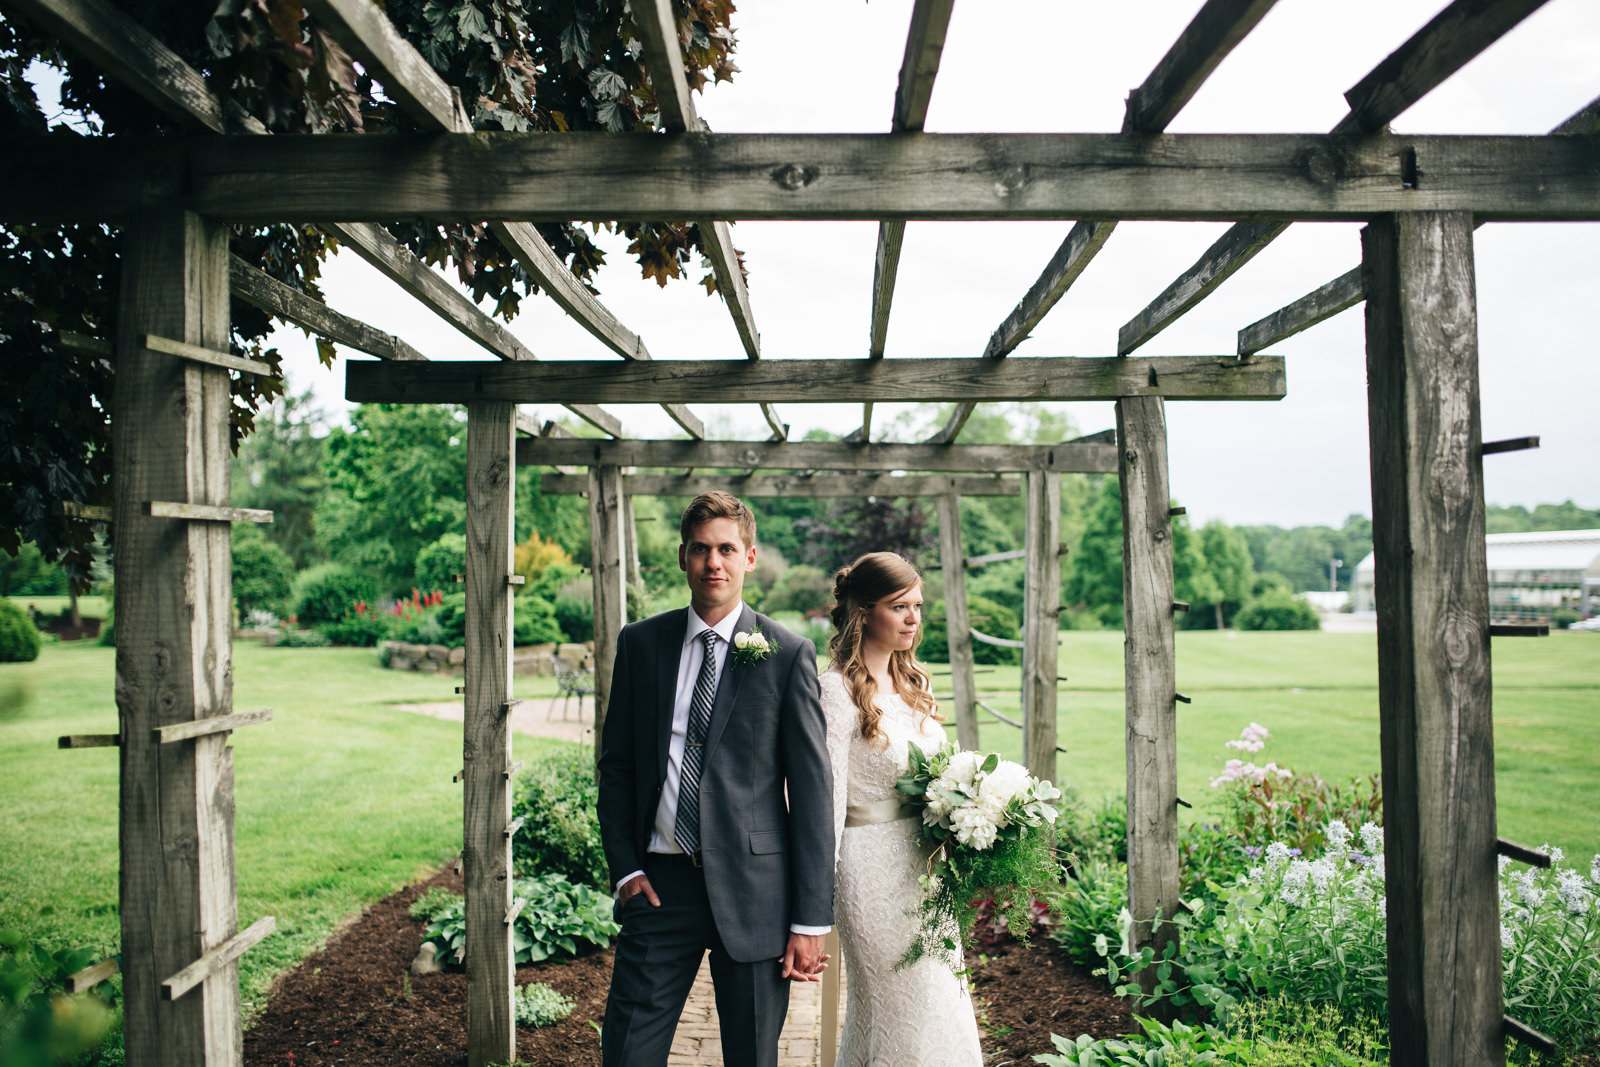 Summer wedding in garden at Quailcrest Farm in Wooster, Ohio.